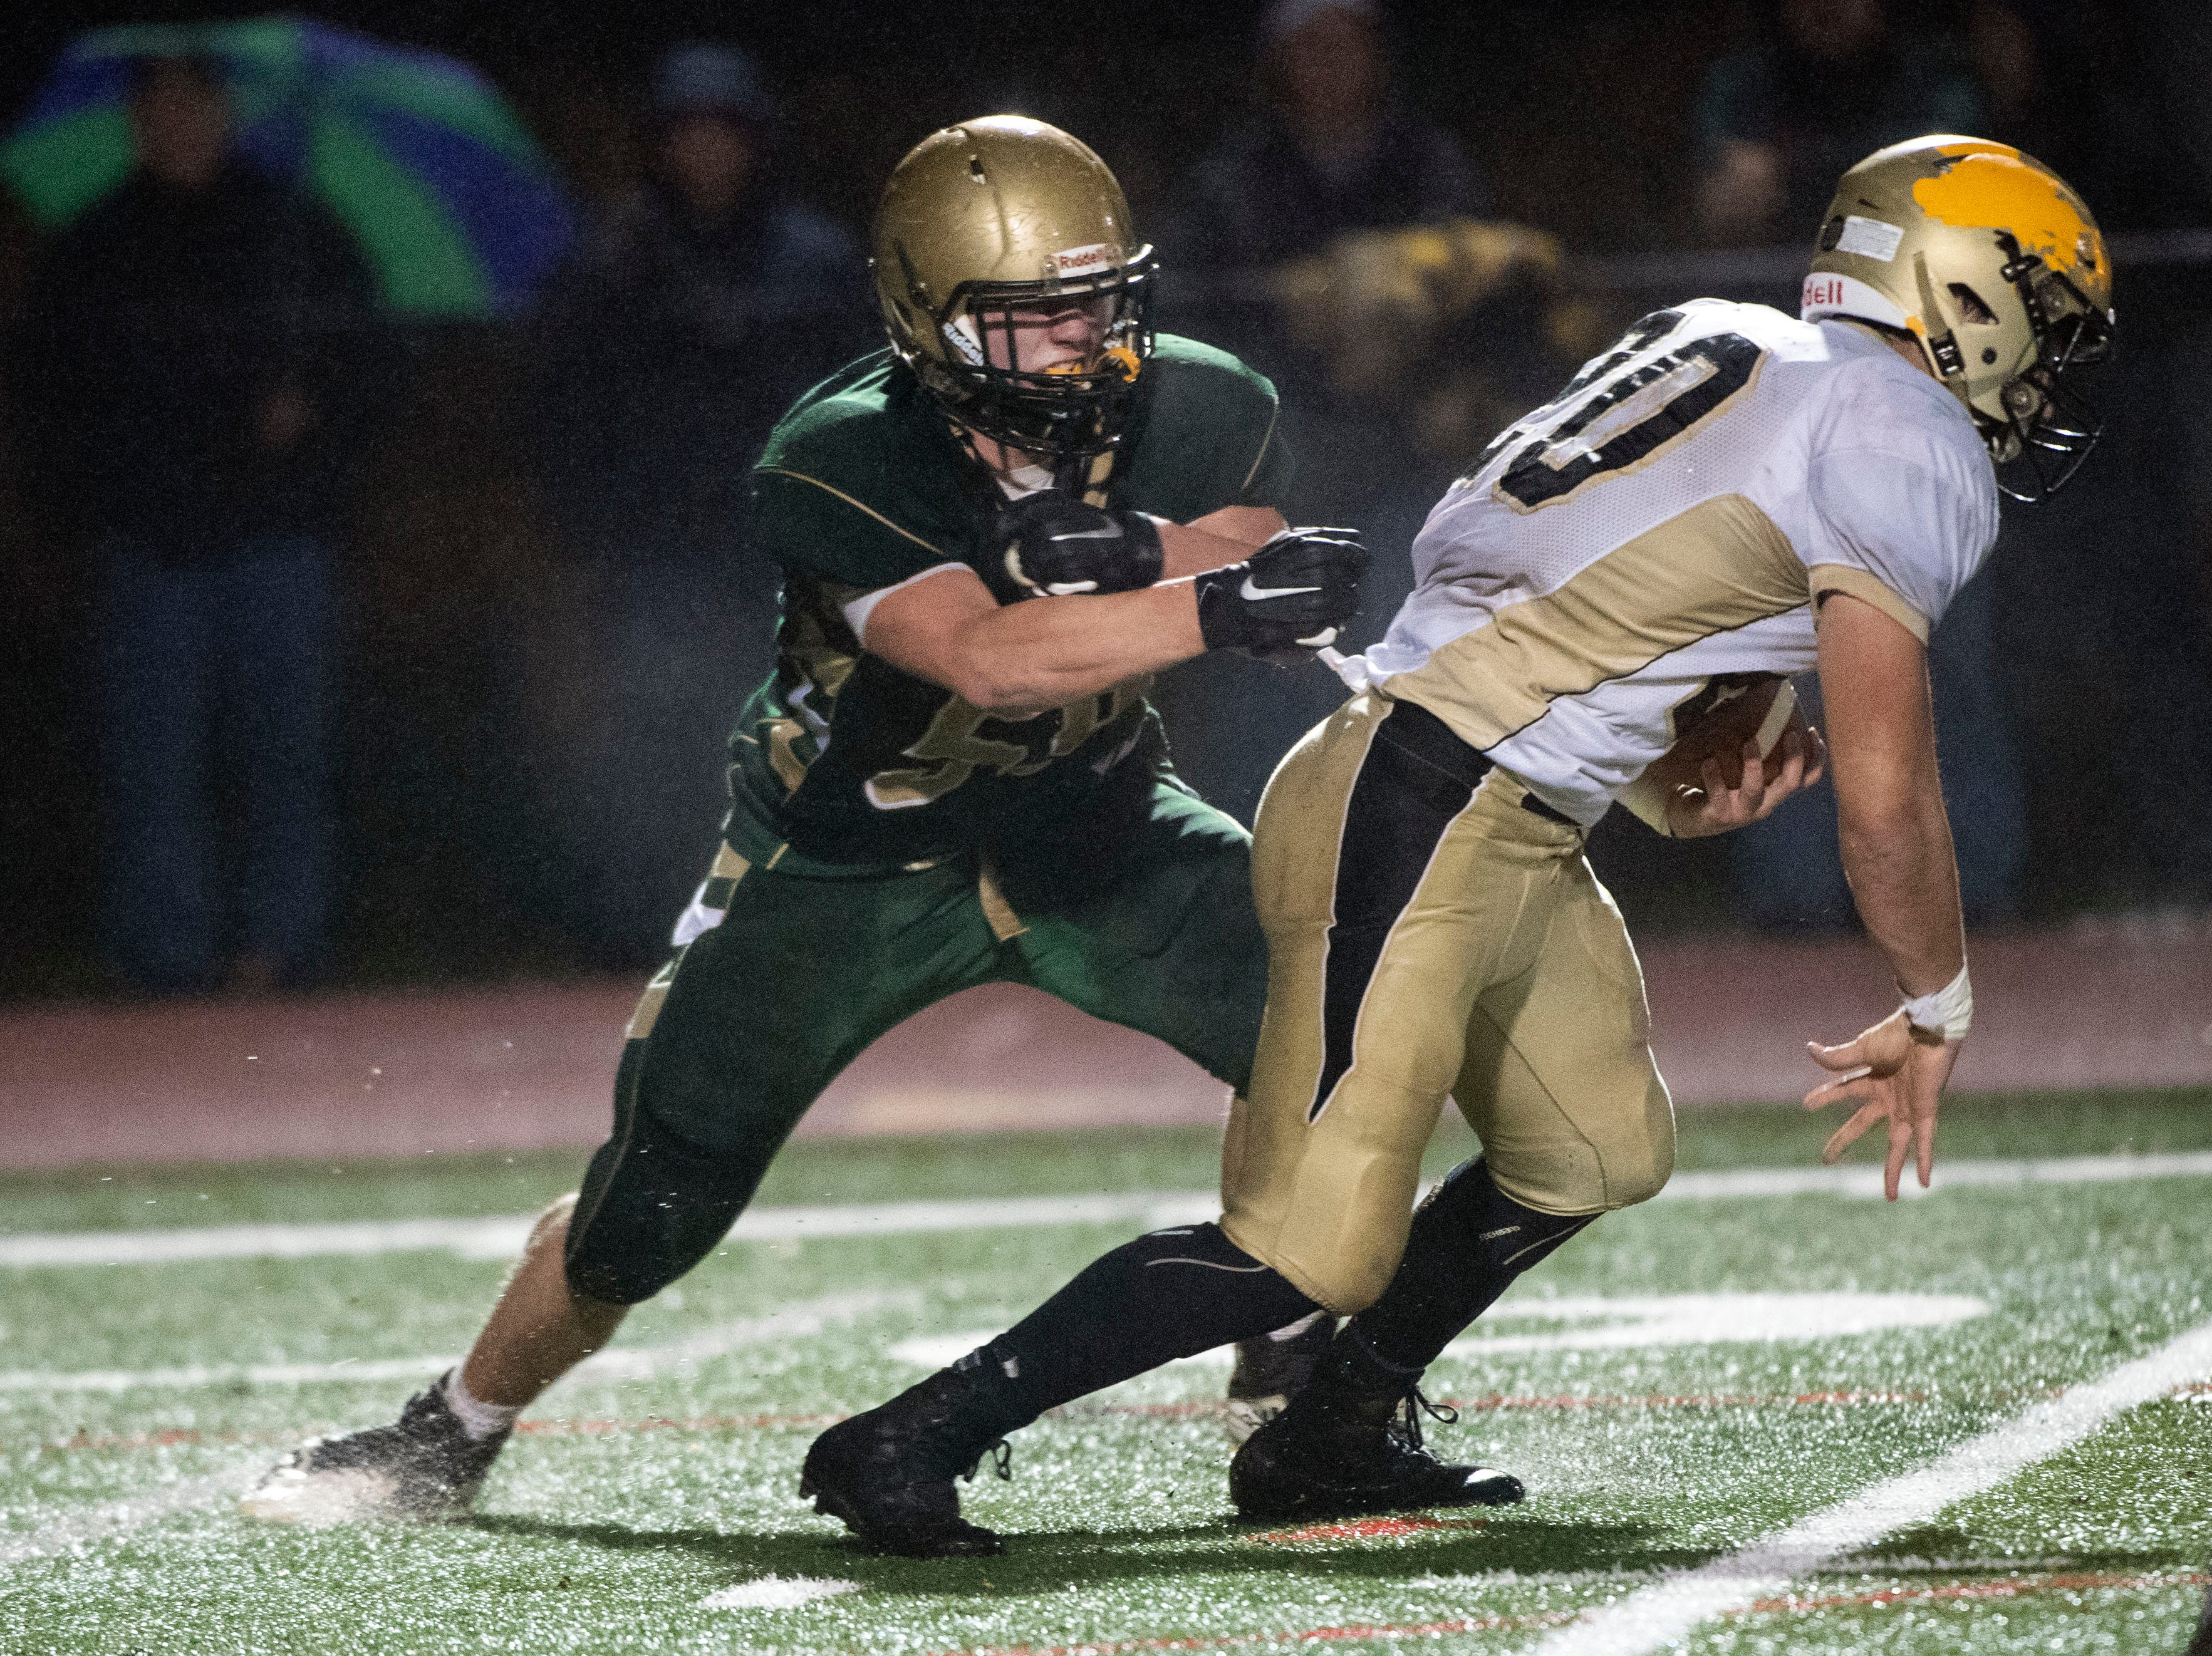 York Catholic's Harris Kohl (59) goes after Delone Catholic's Tyler Monto (20) during the District III 2A championship game at South Western High School on Nov. 9, 2018. The York Catholic Fighting Irish beat the Delone Catholic Squires in overtime, 28-21.